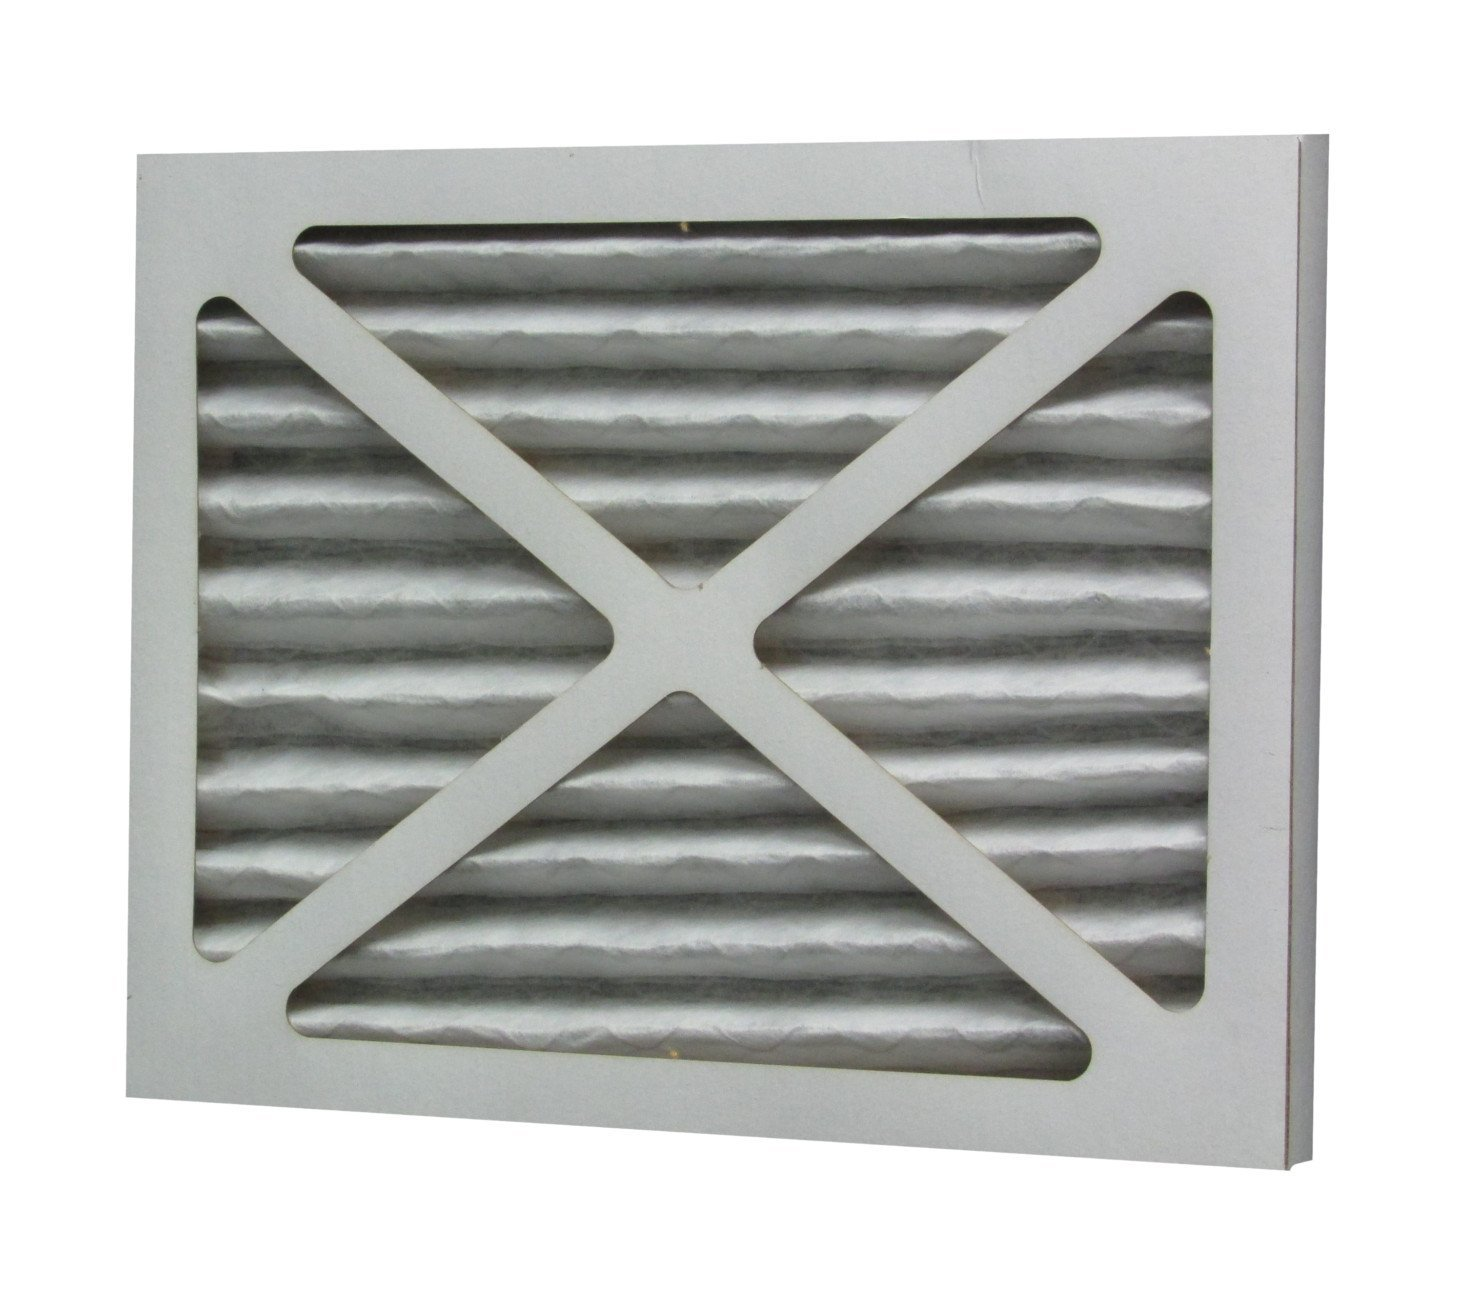 Honeywell DH65 Dehumidifier Filter(50033205-009) by Magnet by FiltersUSA